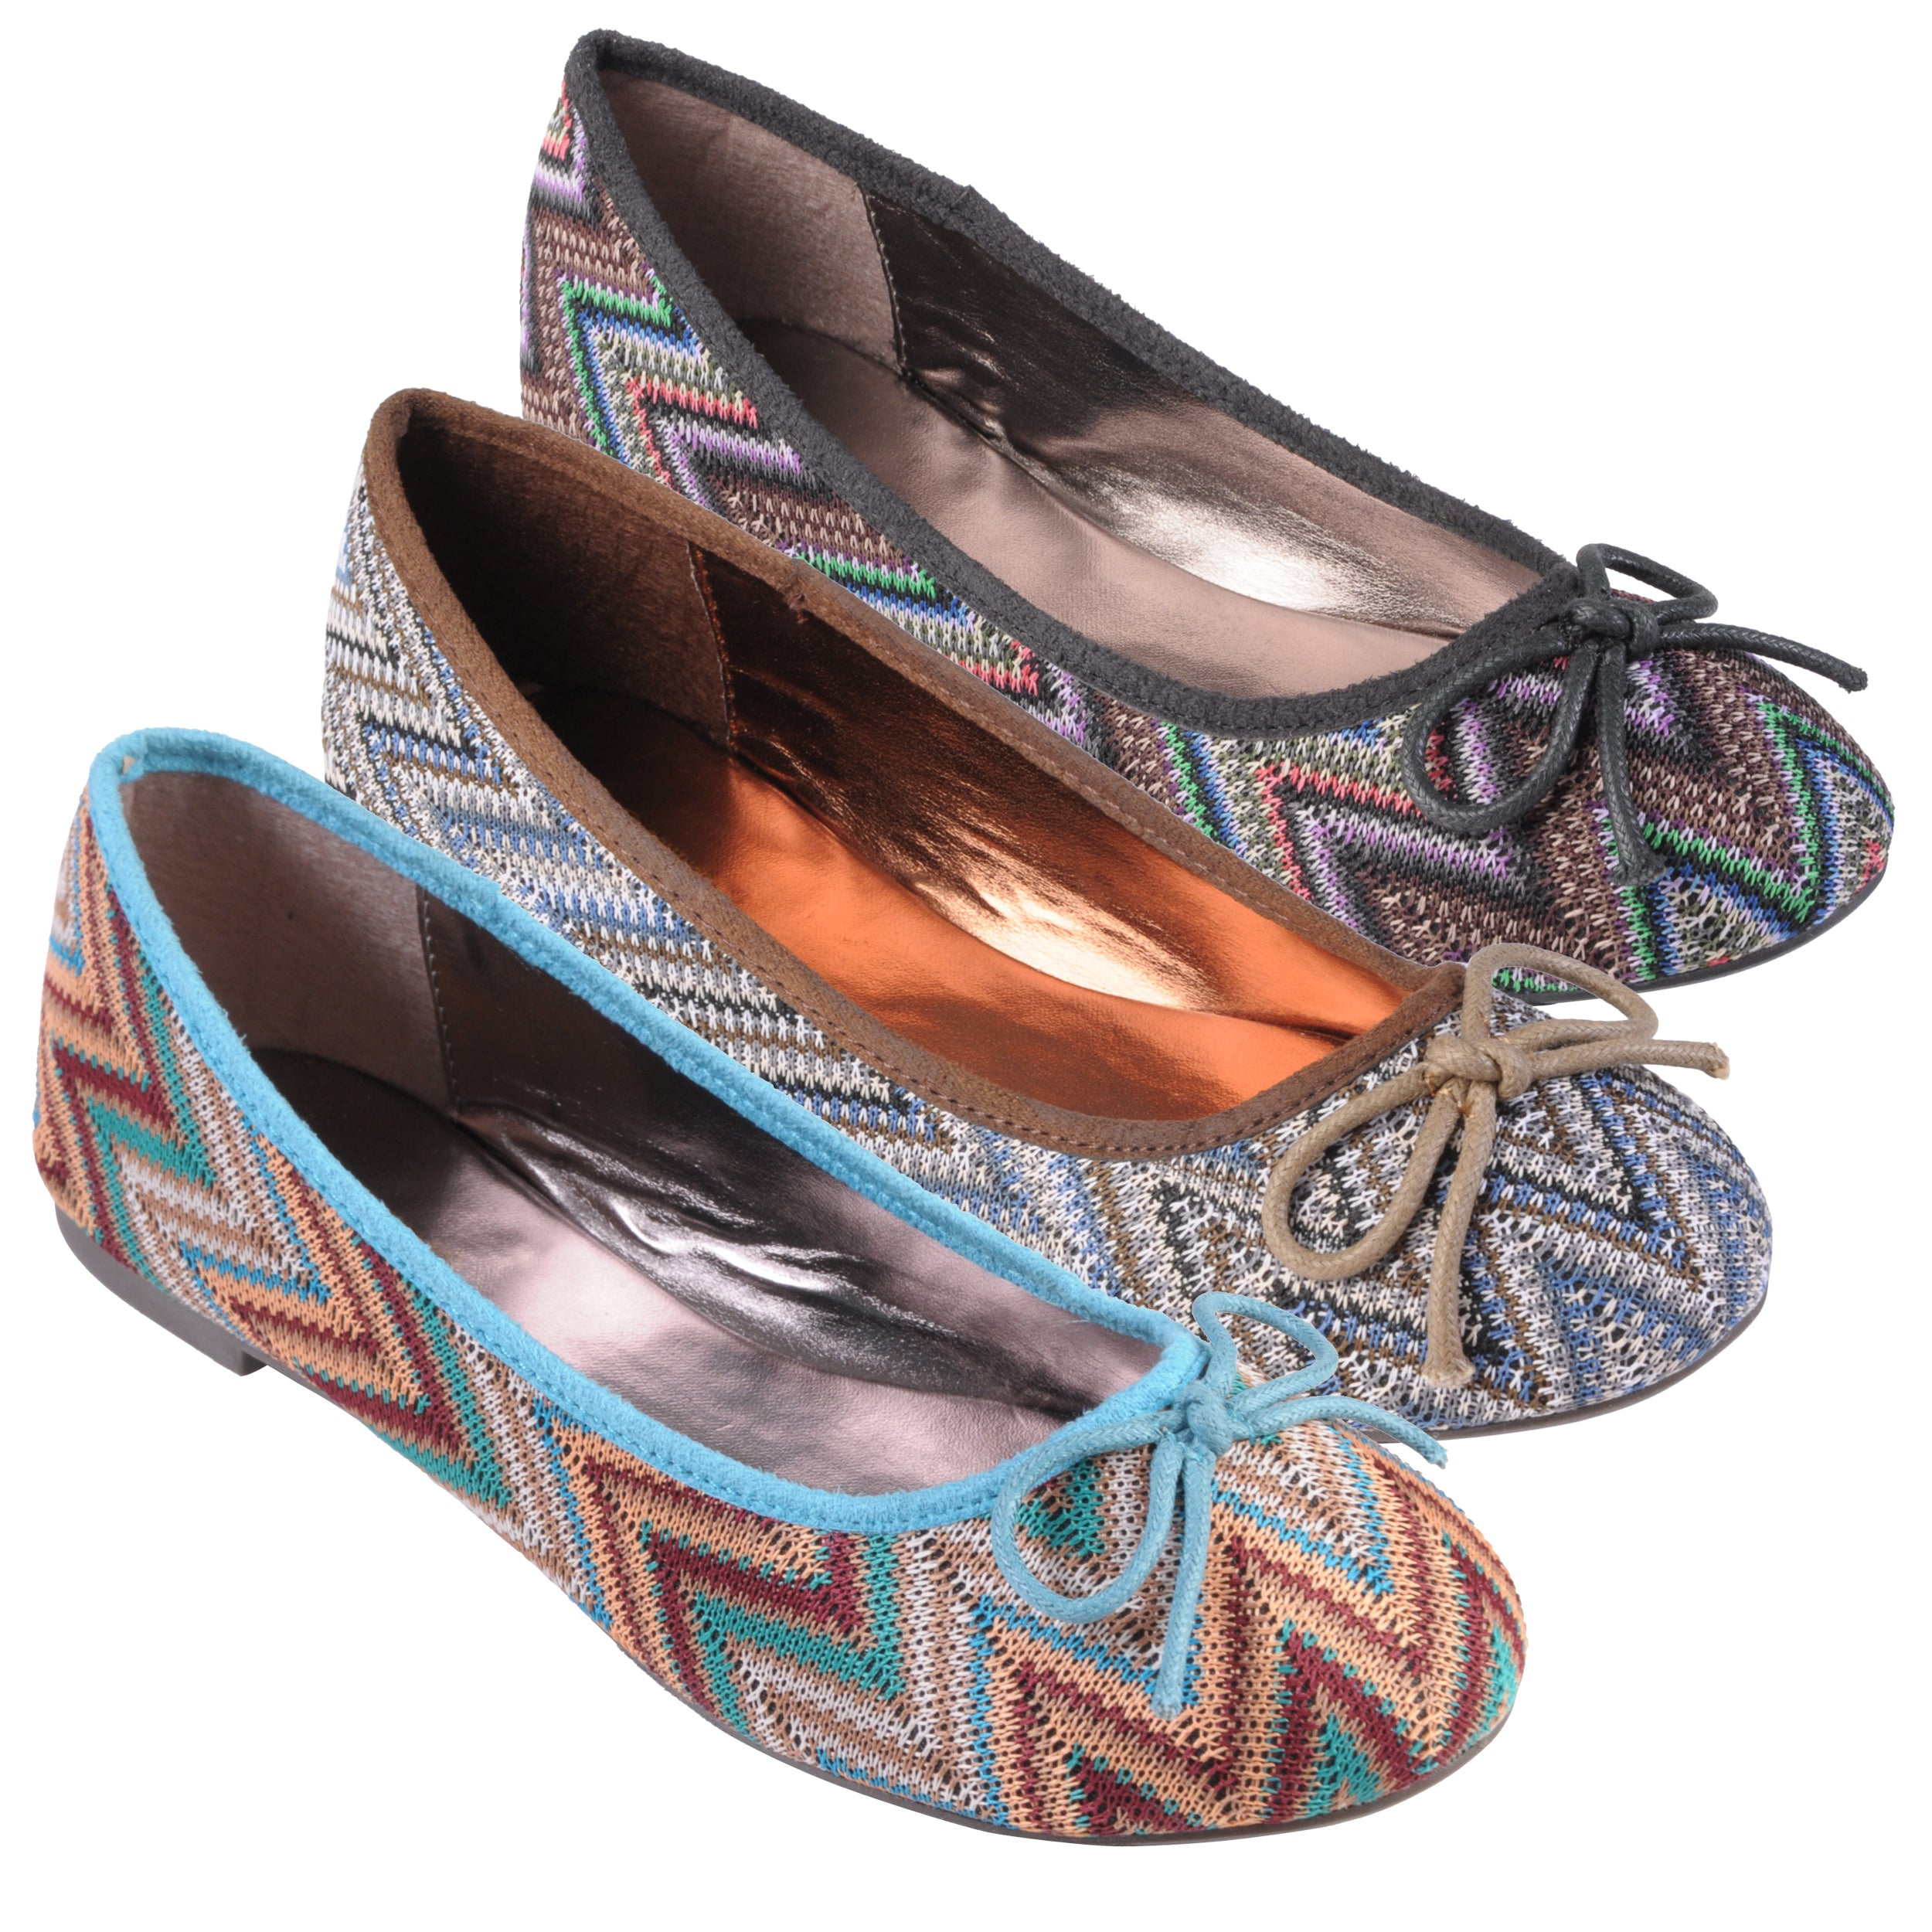 Journee Collection Women's 'Shell' Bow Detail Round Toe Ballet Flats